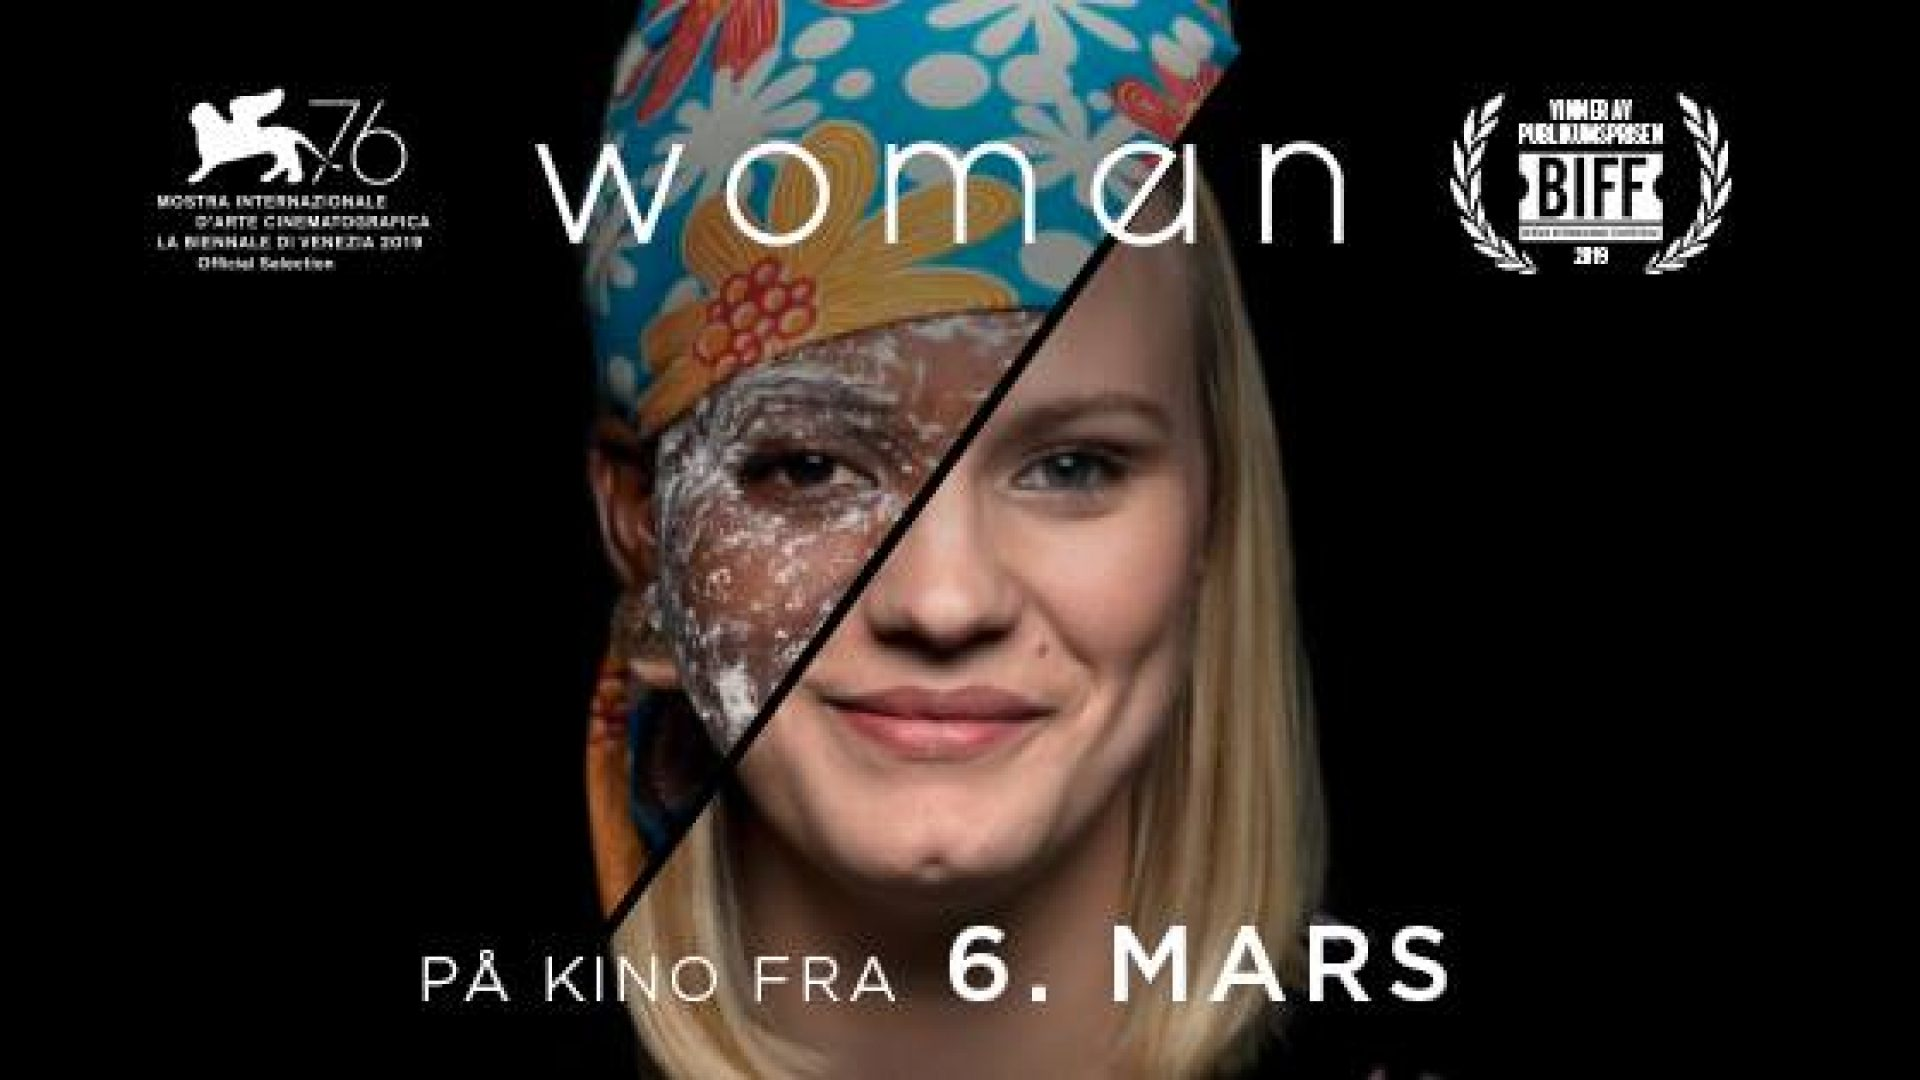 Filmplakat for Woman med premiere 6. mars 2020